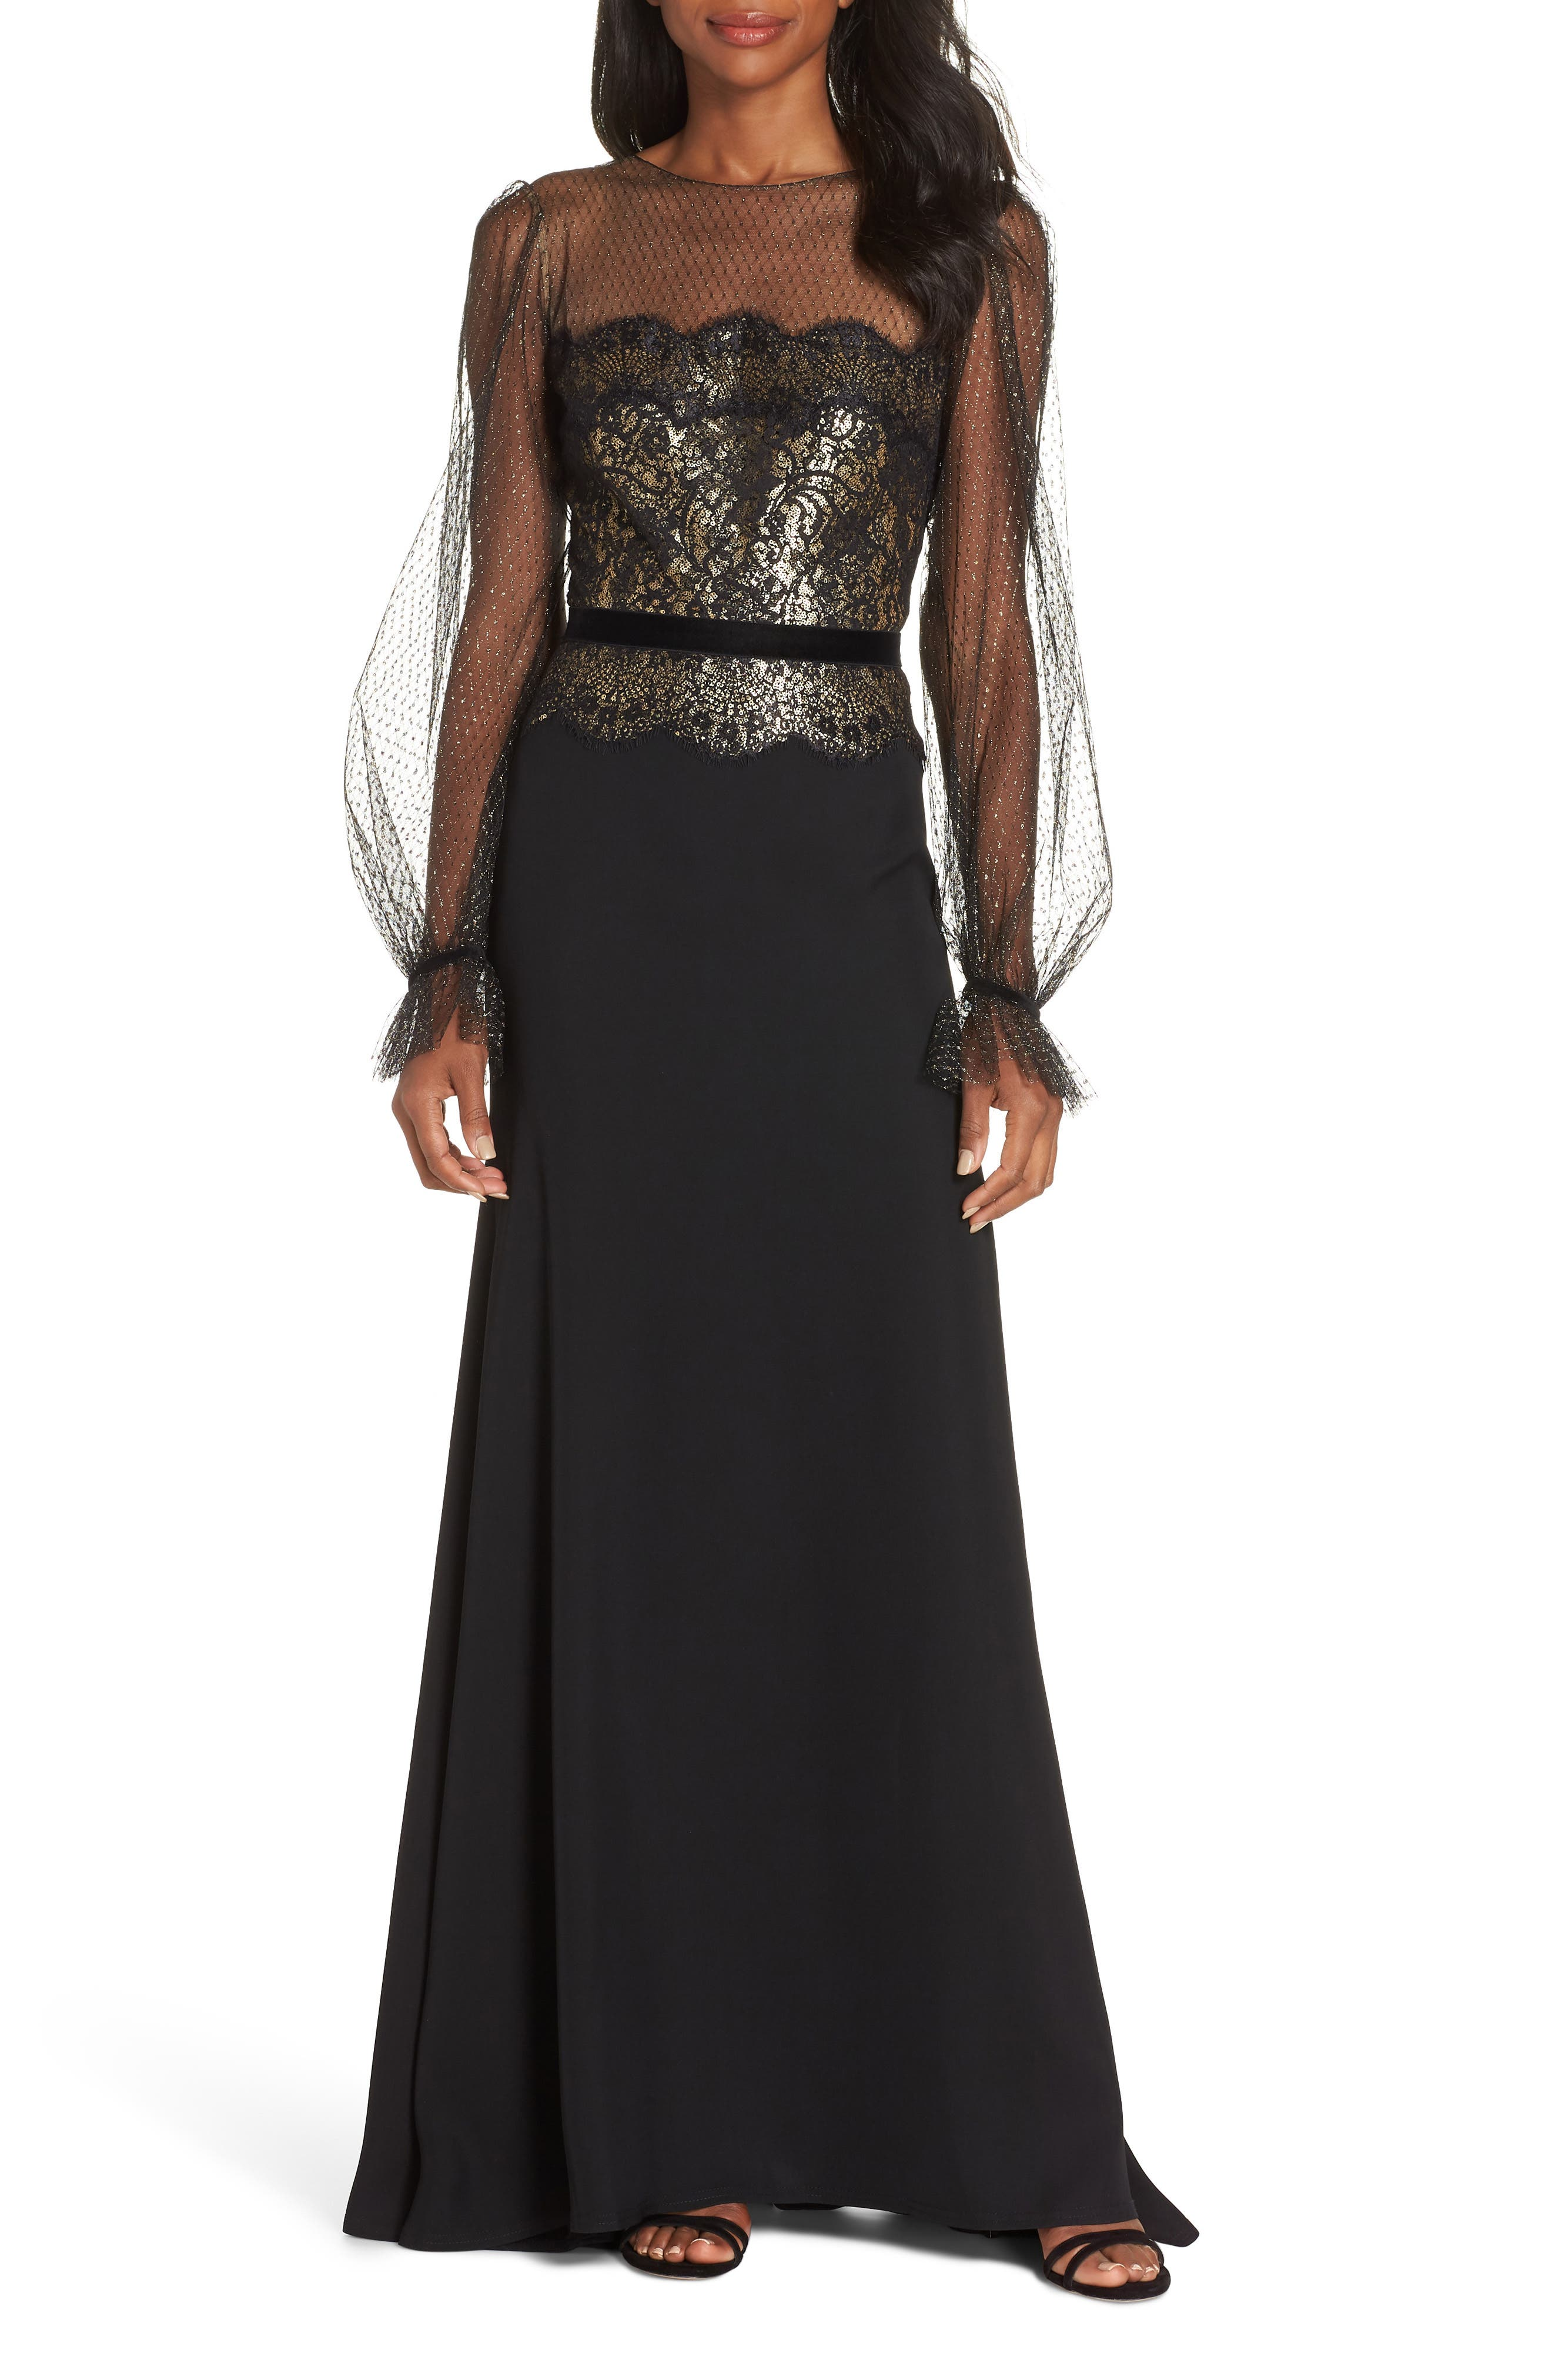 1940s Evening, Prom, Party, Formal, Ball Gowns Womens Tadashi Shoji Crepe  Sequin Gown Size 4 - Black $288.00 AT vintagedancer.com